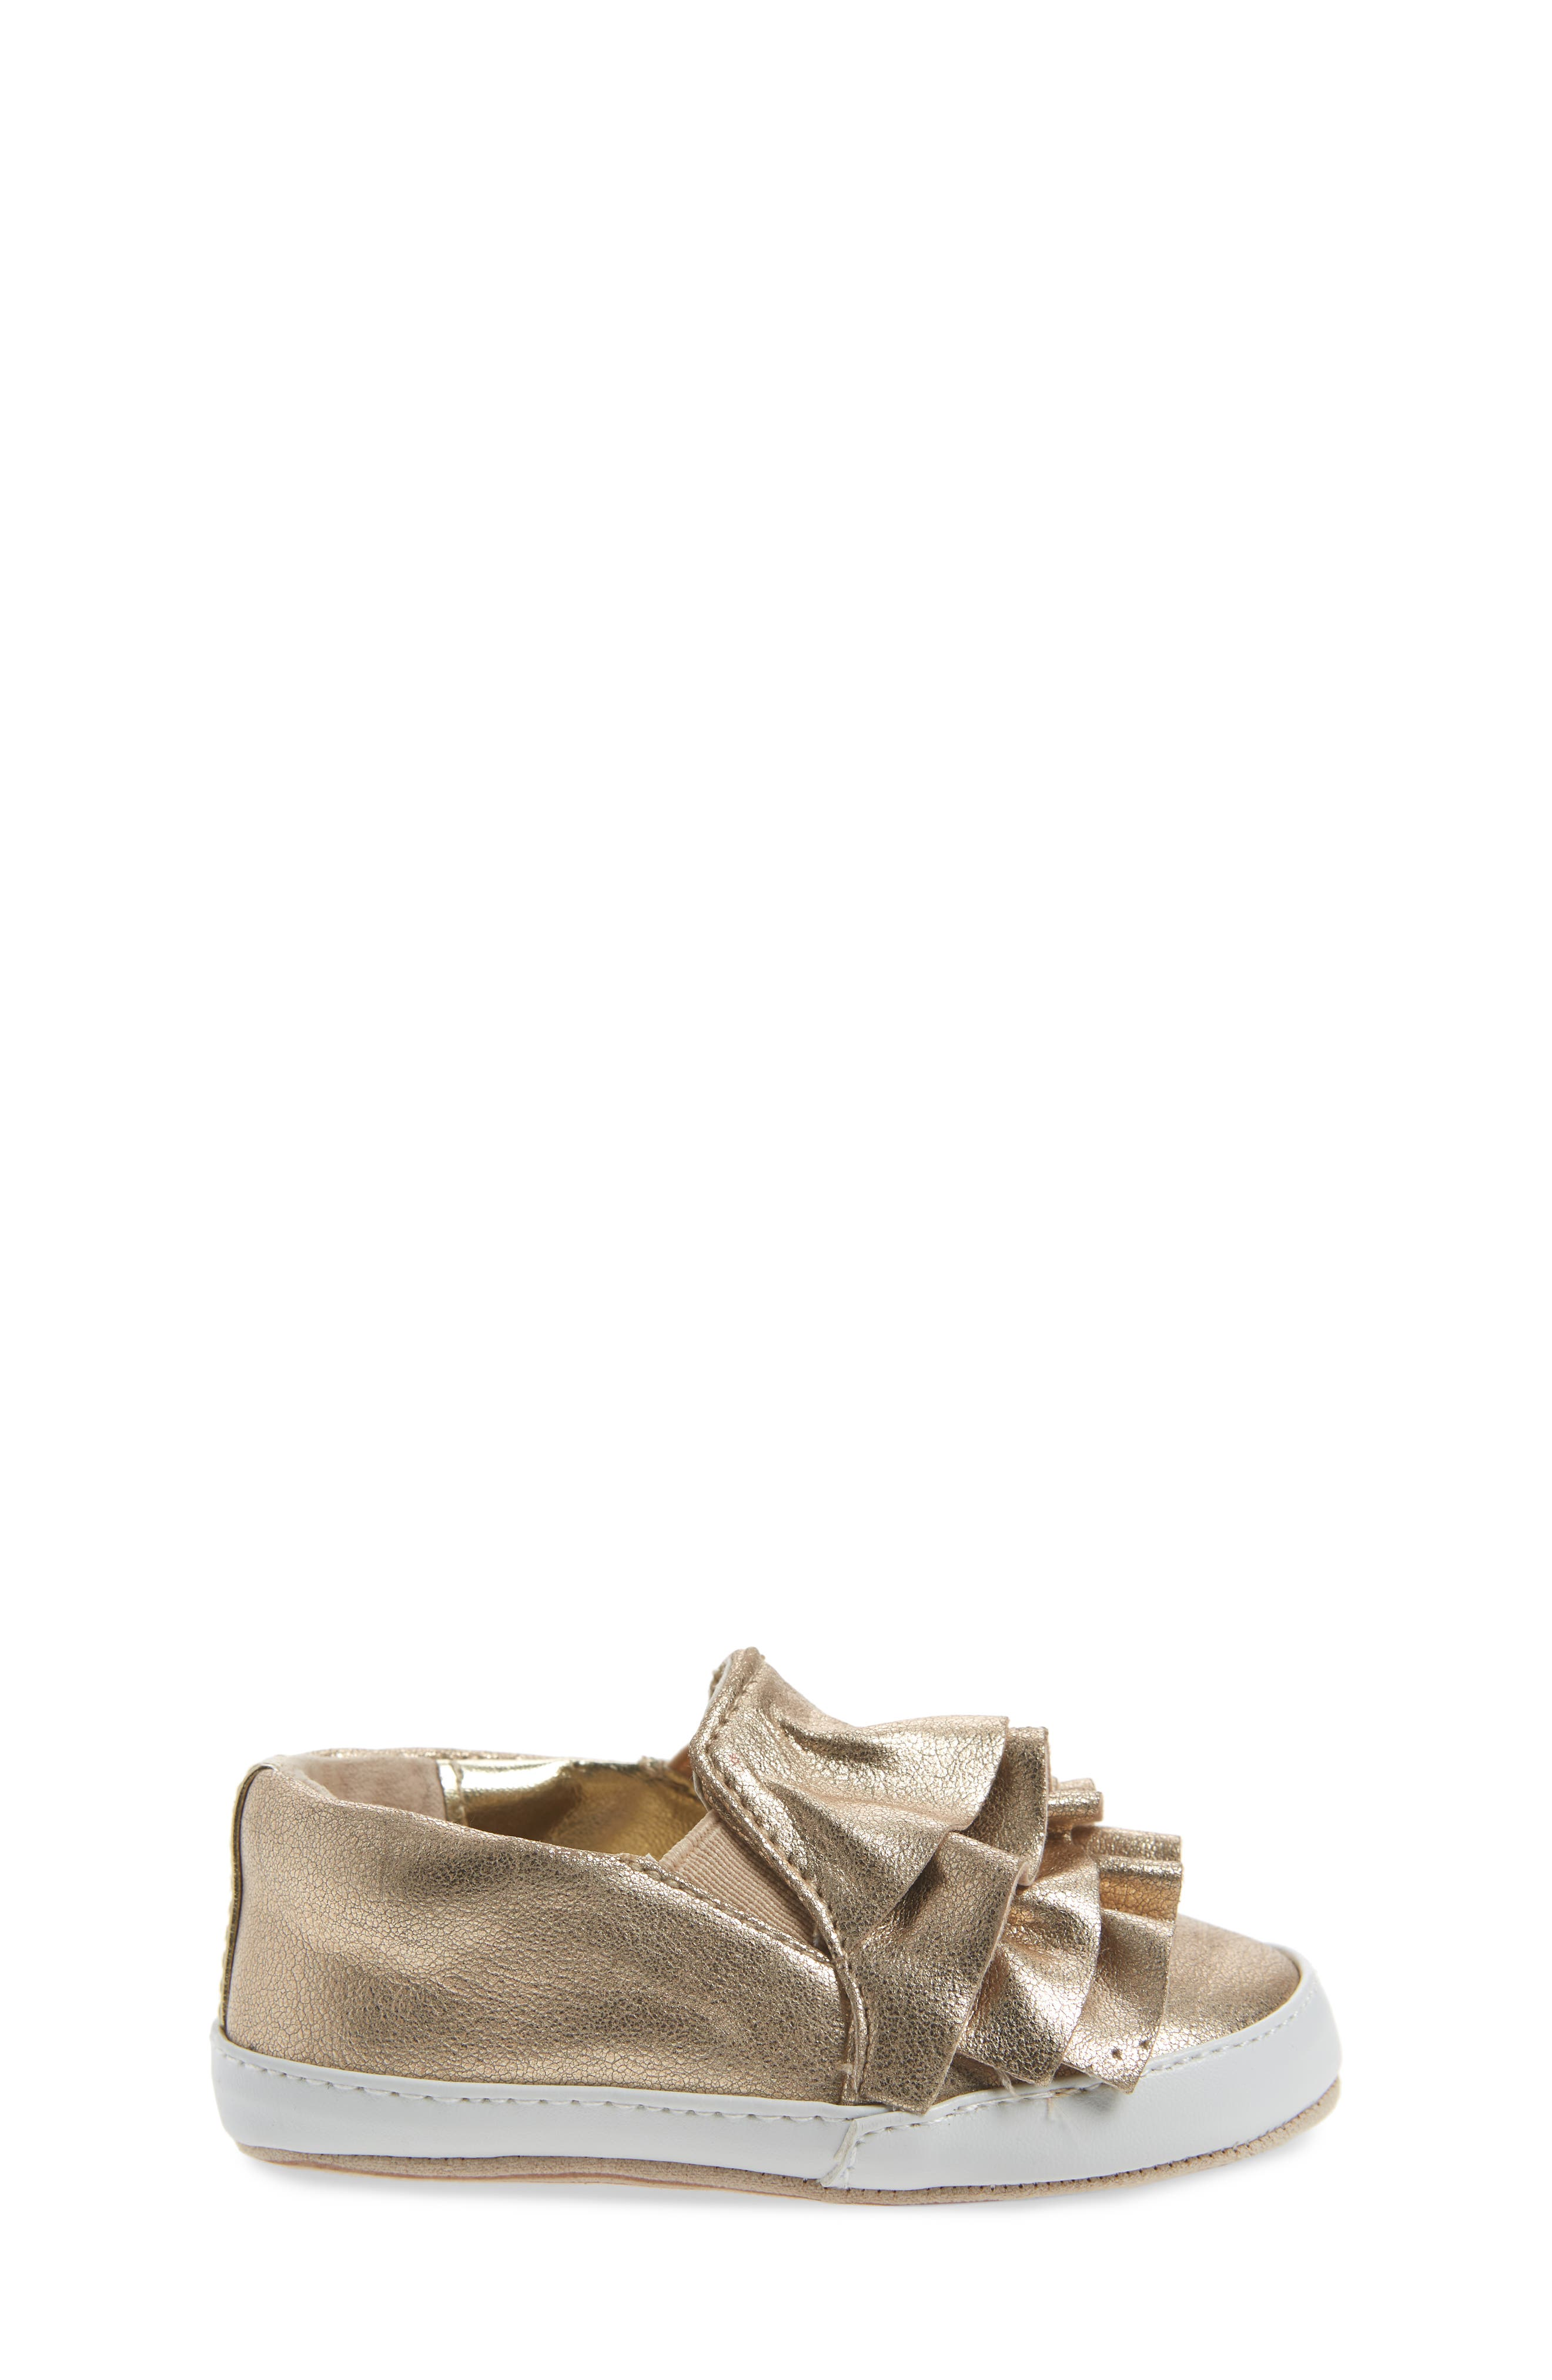 Ruffle Metallic Kam Slip-On Sneaker,                             Alternate thumbnail 3, color,                             Gold